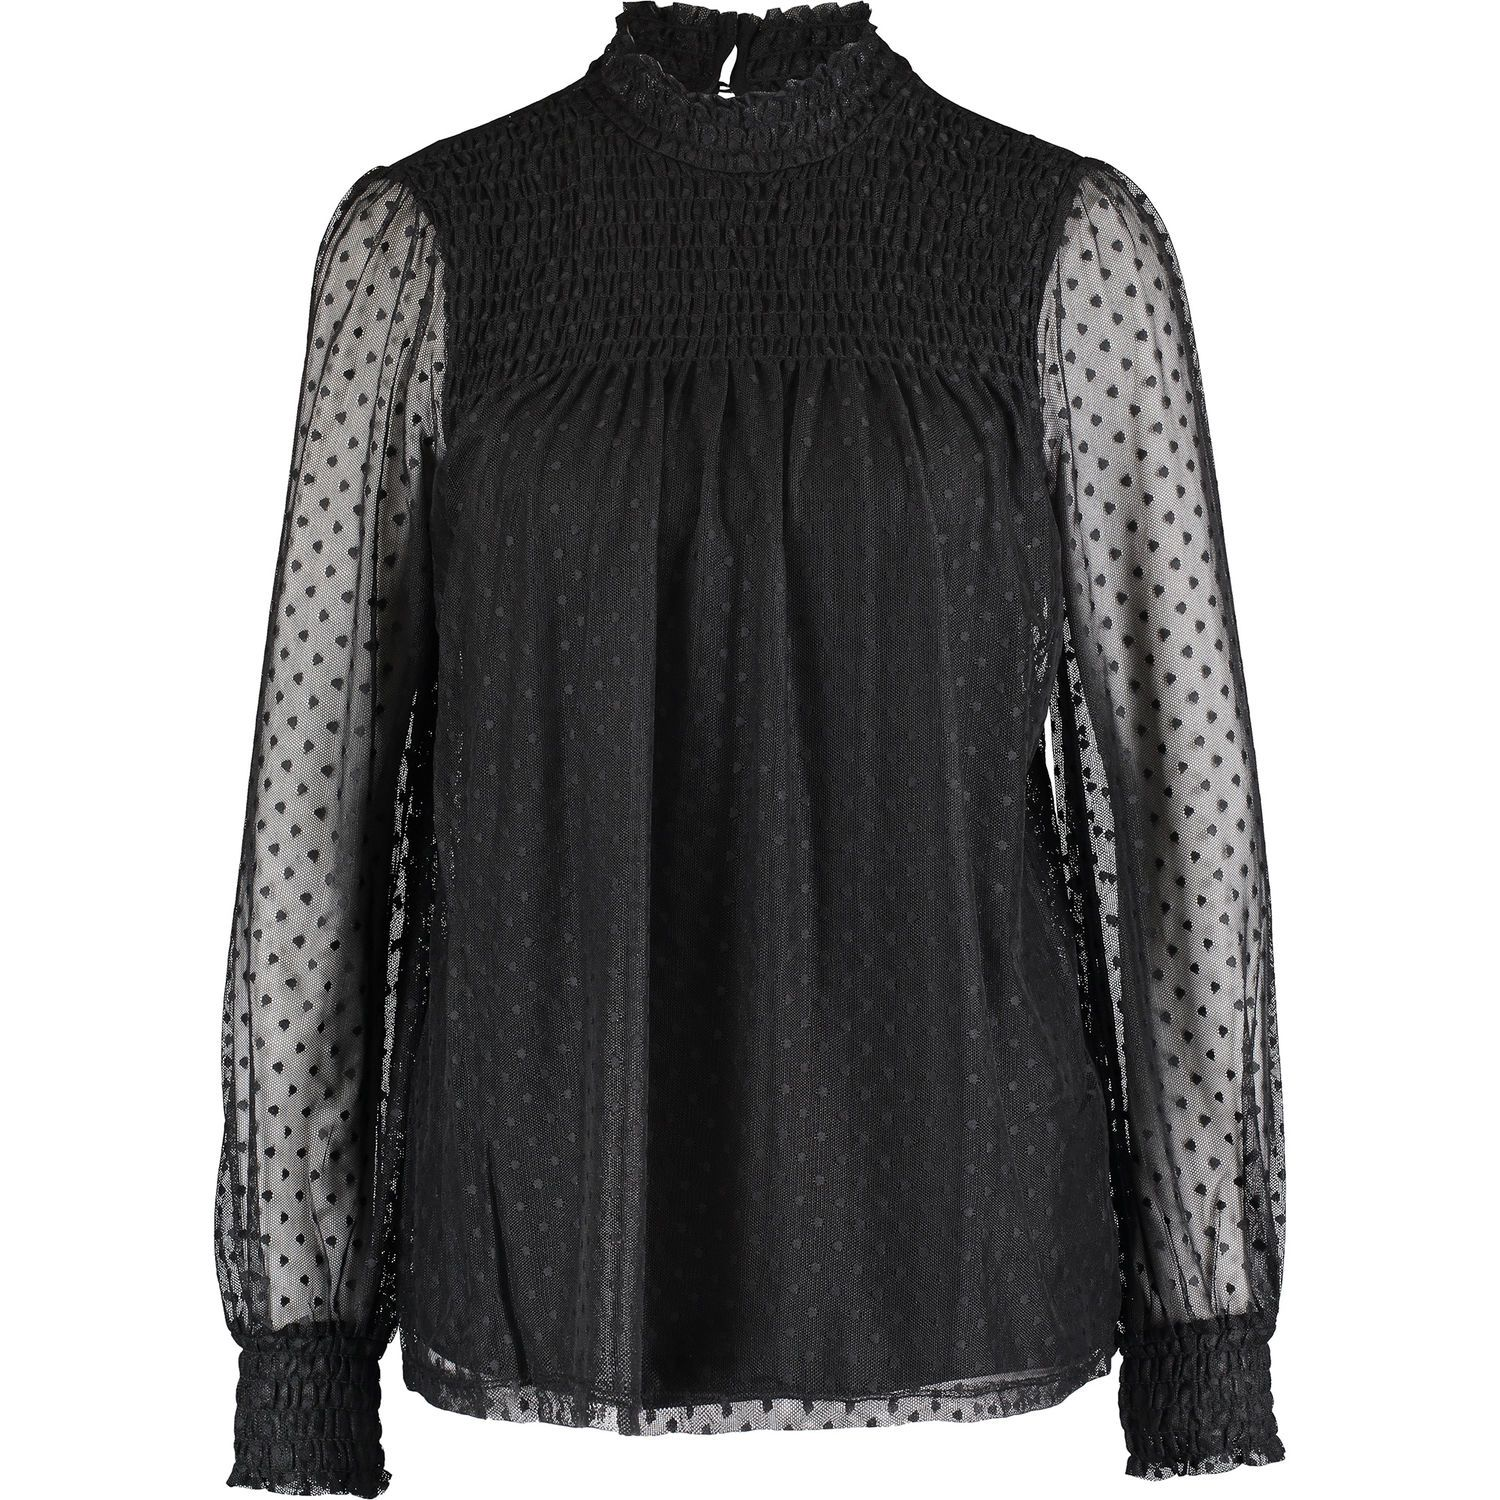 2623665bf85 Black Smock Mesh Top - Clothing - Partywear - Occasionwear - Women - TK Maxx